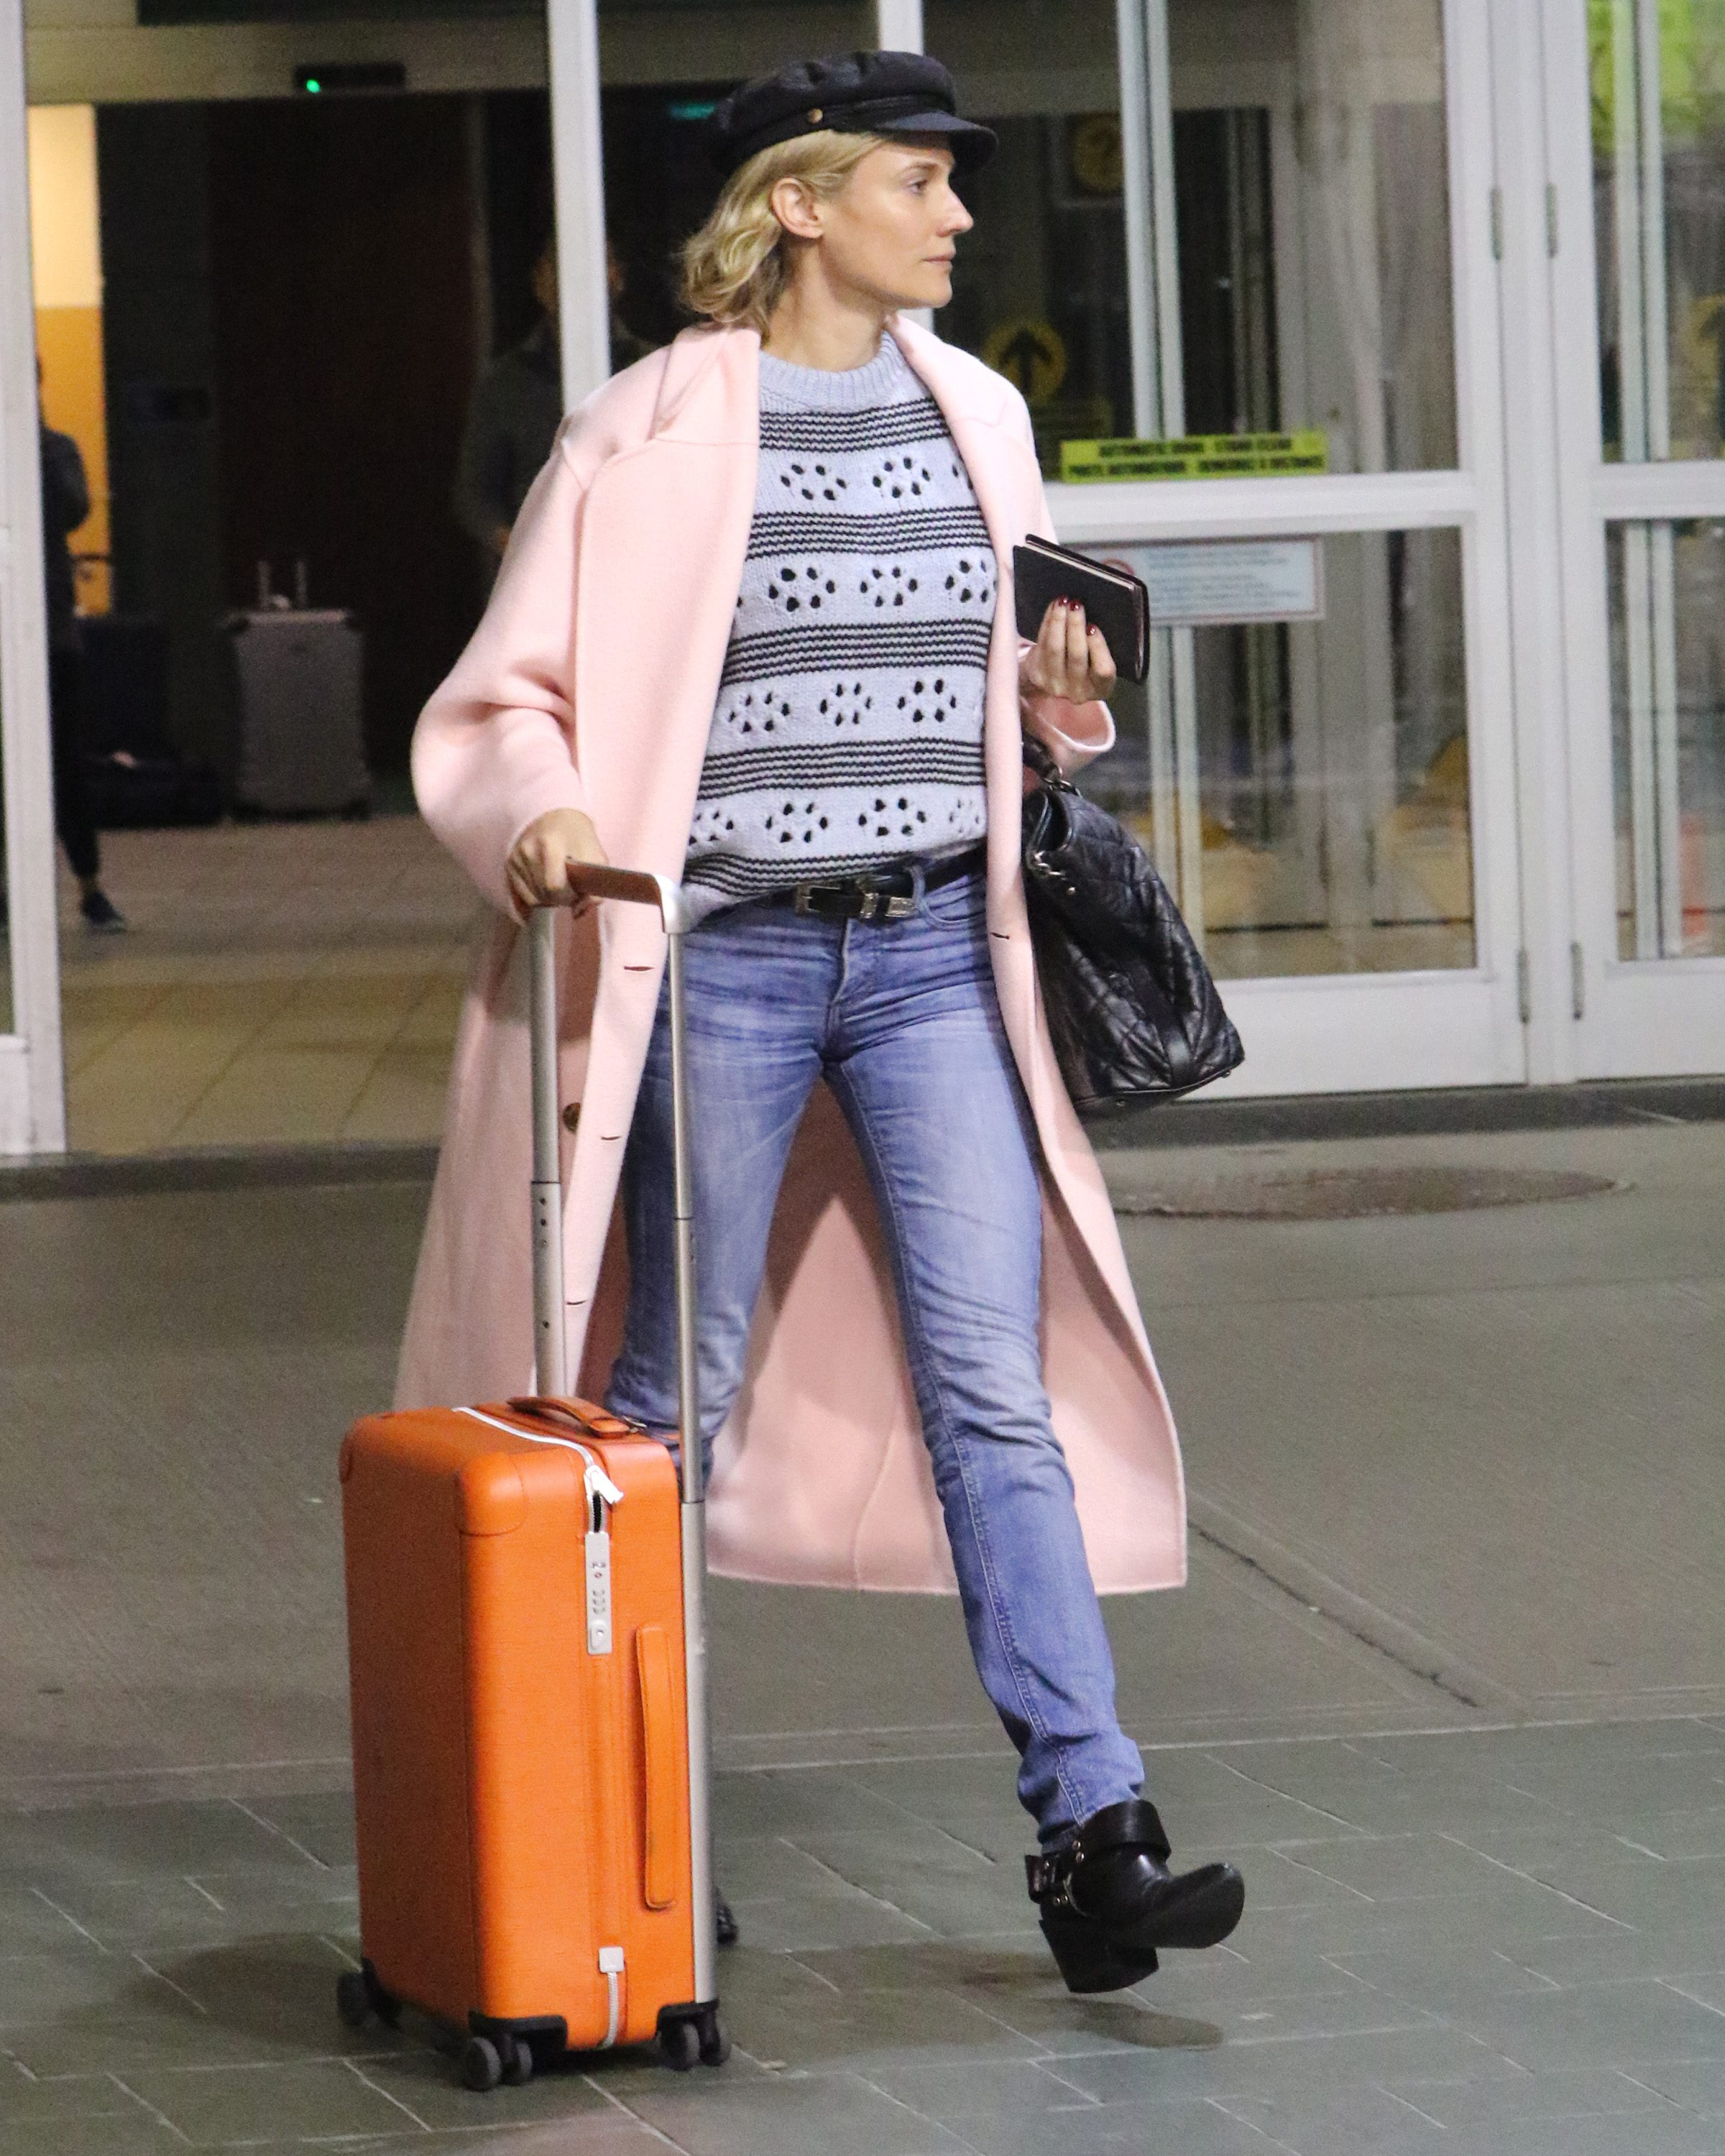 Diane Kruger Arrives Into Vancouver To Film The Women Of Marwen Daily Hive Vancouver